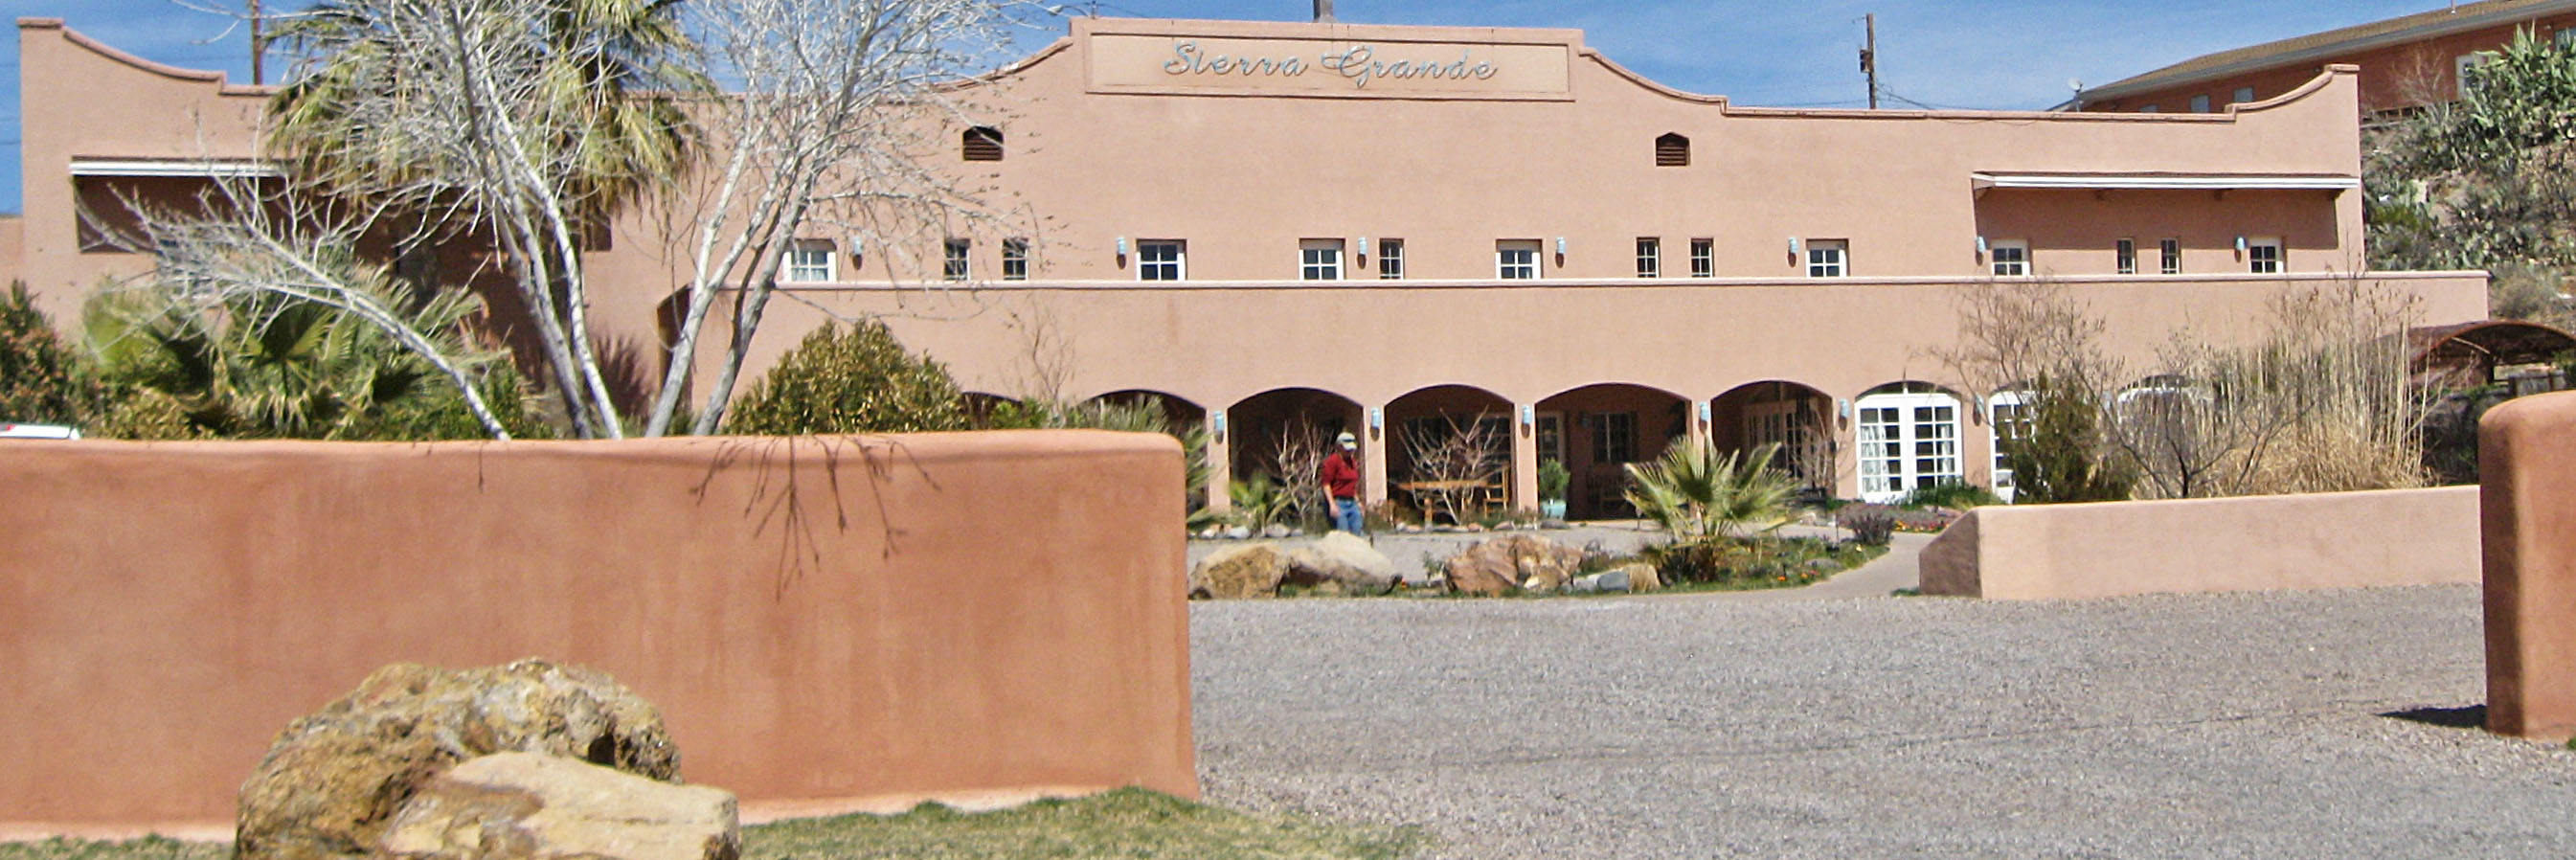 Sierra Grande Lodge Spa Truth Or Consequences Nm